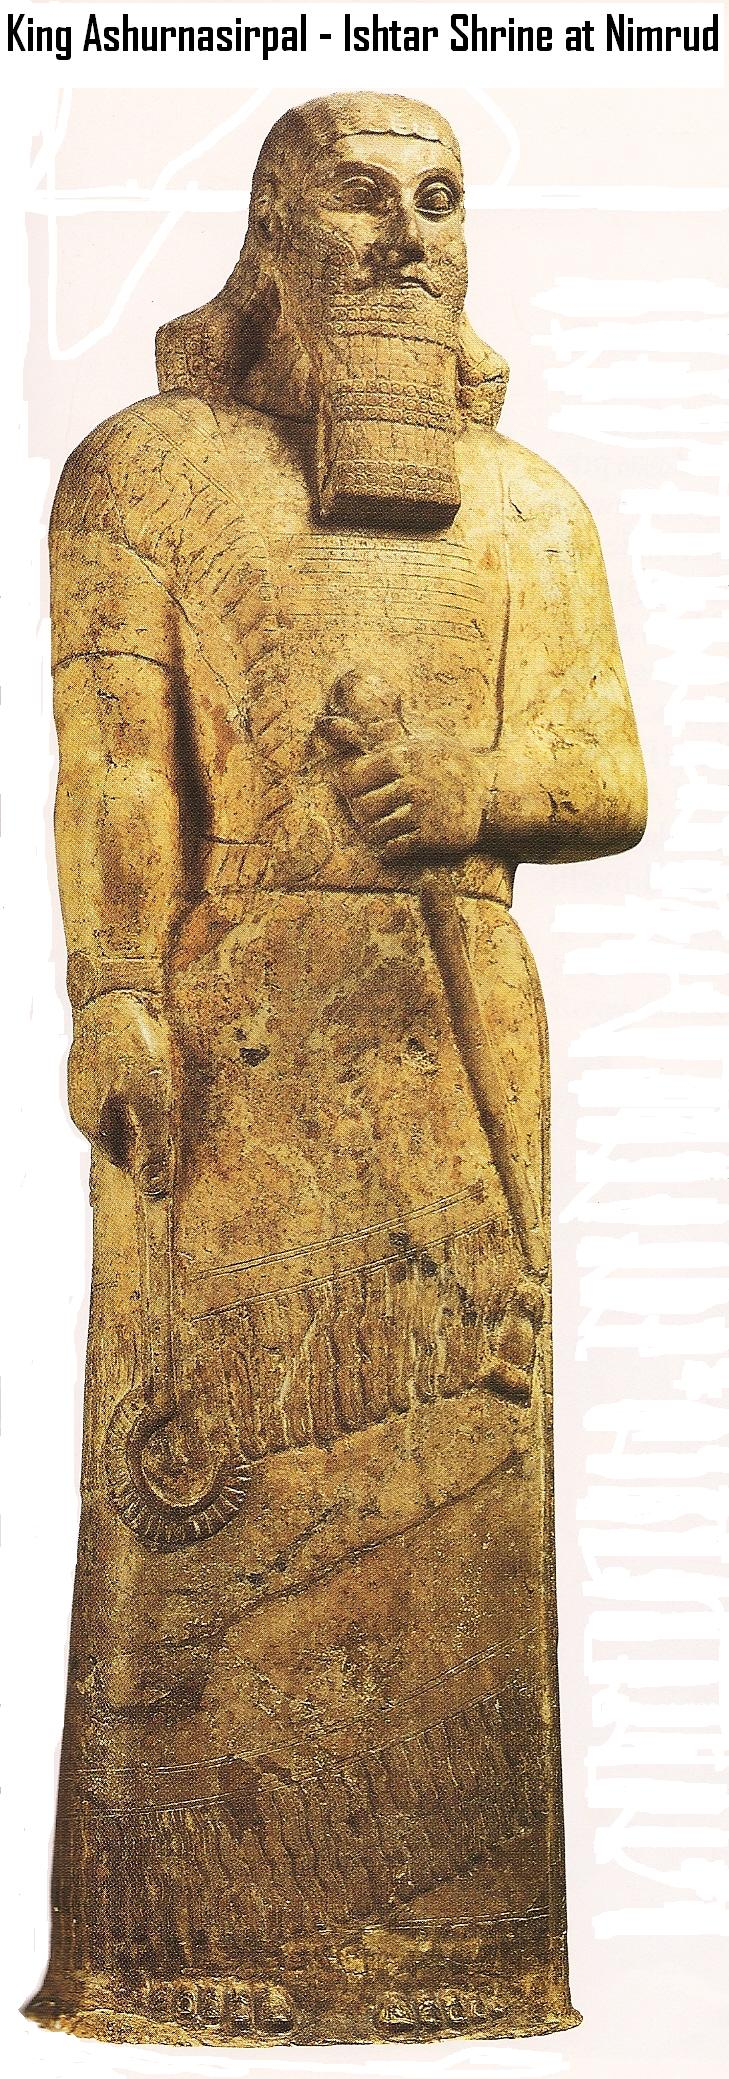 14d - King Ashurnasirpal II, giant mixed-breed mighty man appointed kingship of Assyria, ruled 883-859 B.C.